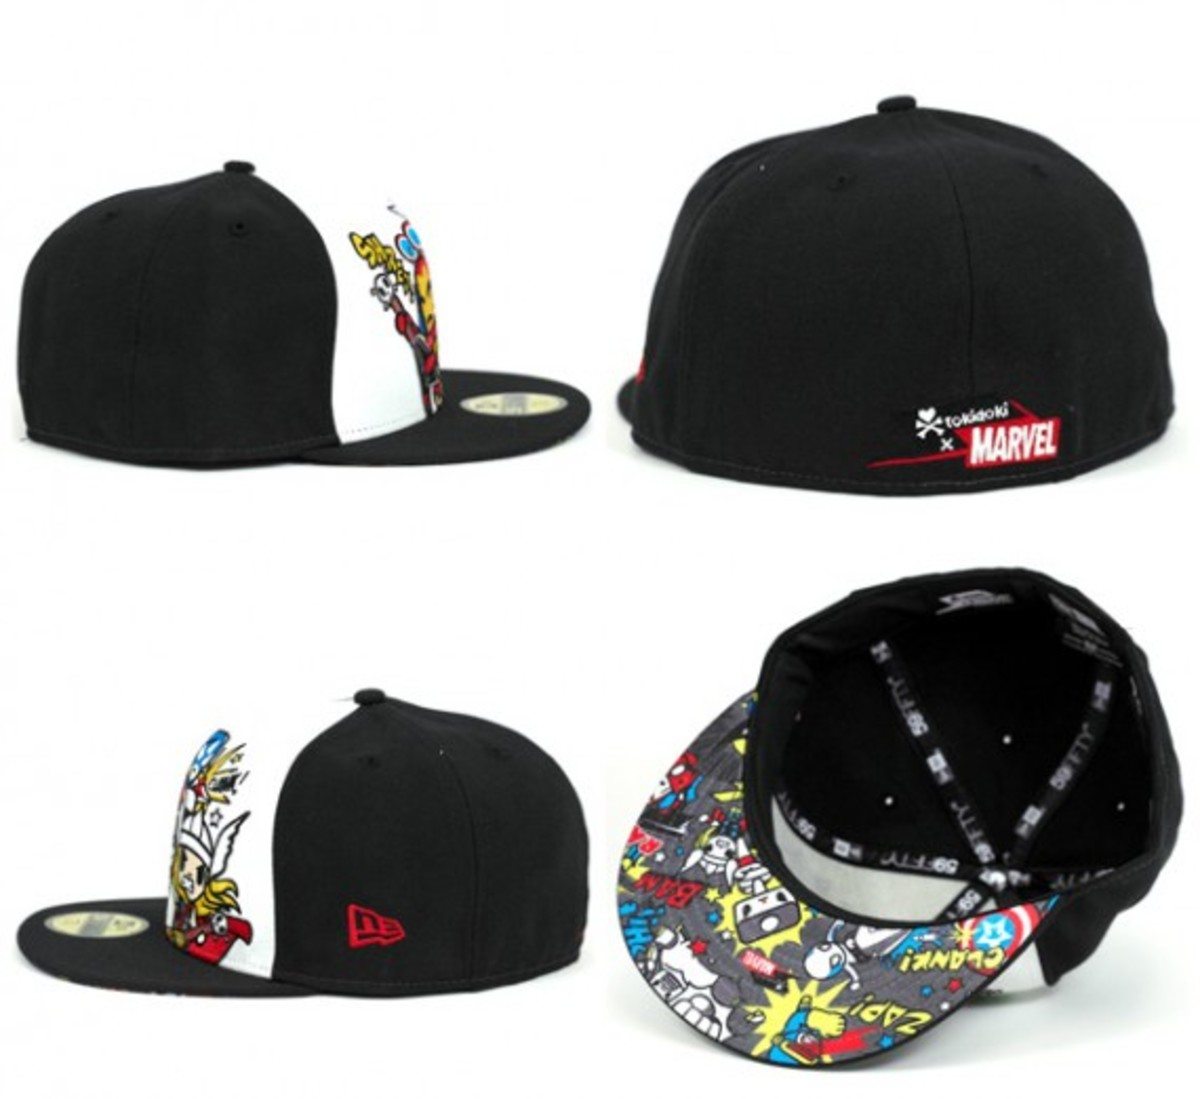 tokidoki-marvel-new-era-59fifty-fitted-caps-collection-06